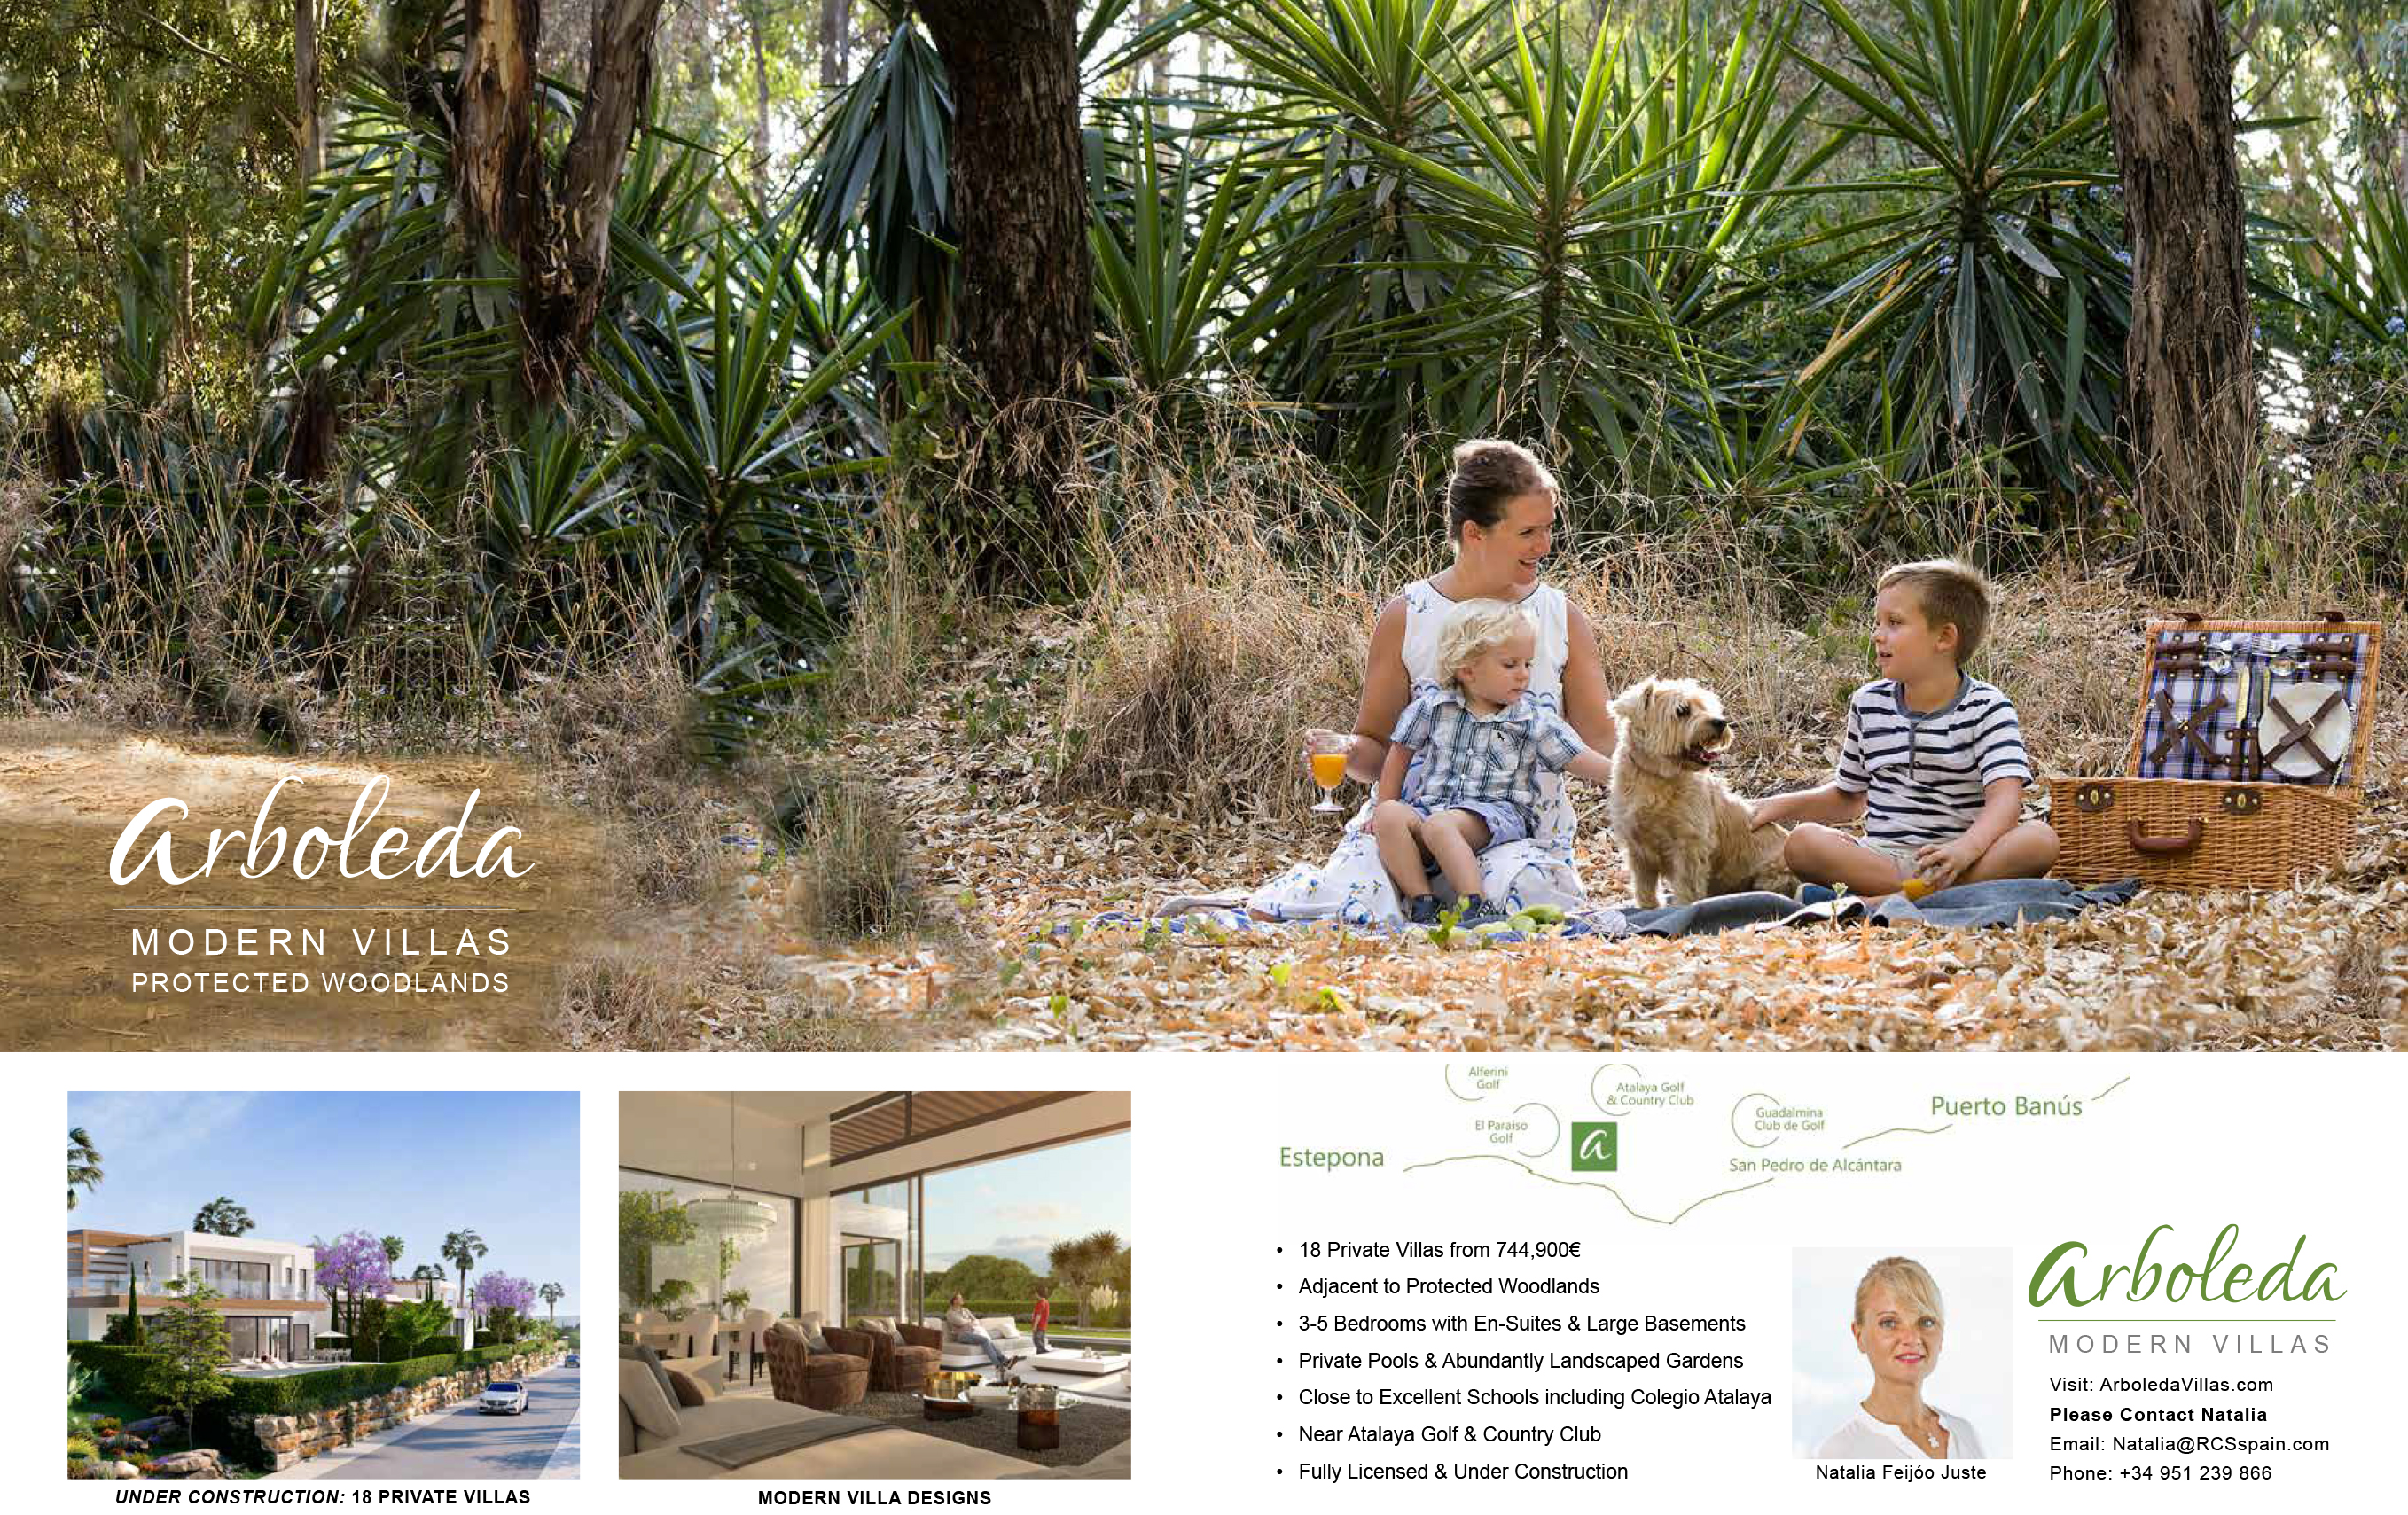 Protected Woodlands at Arboleda Villas by Real Capital Solutions Spain